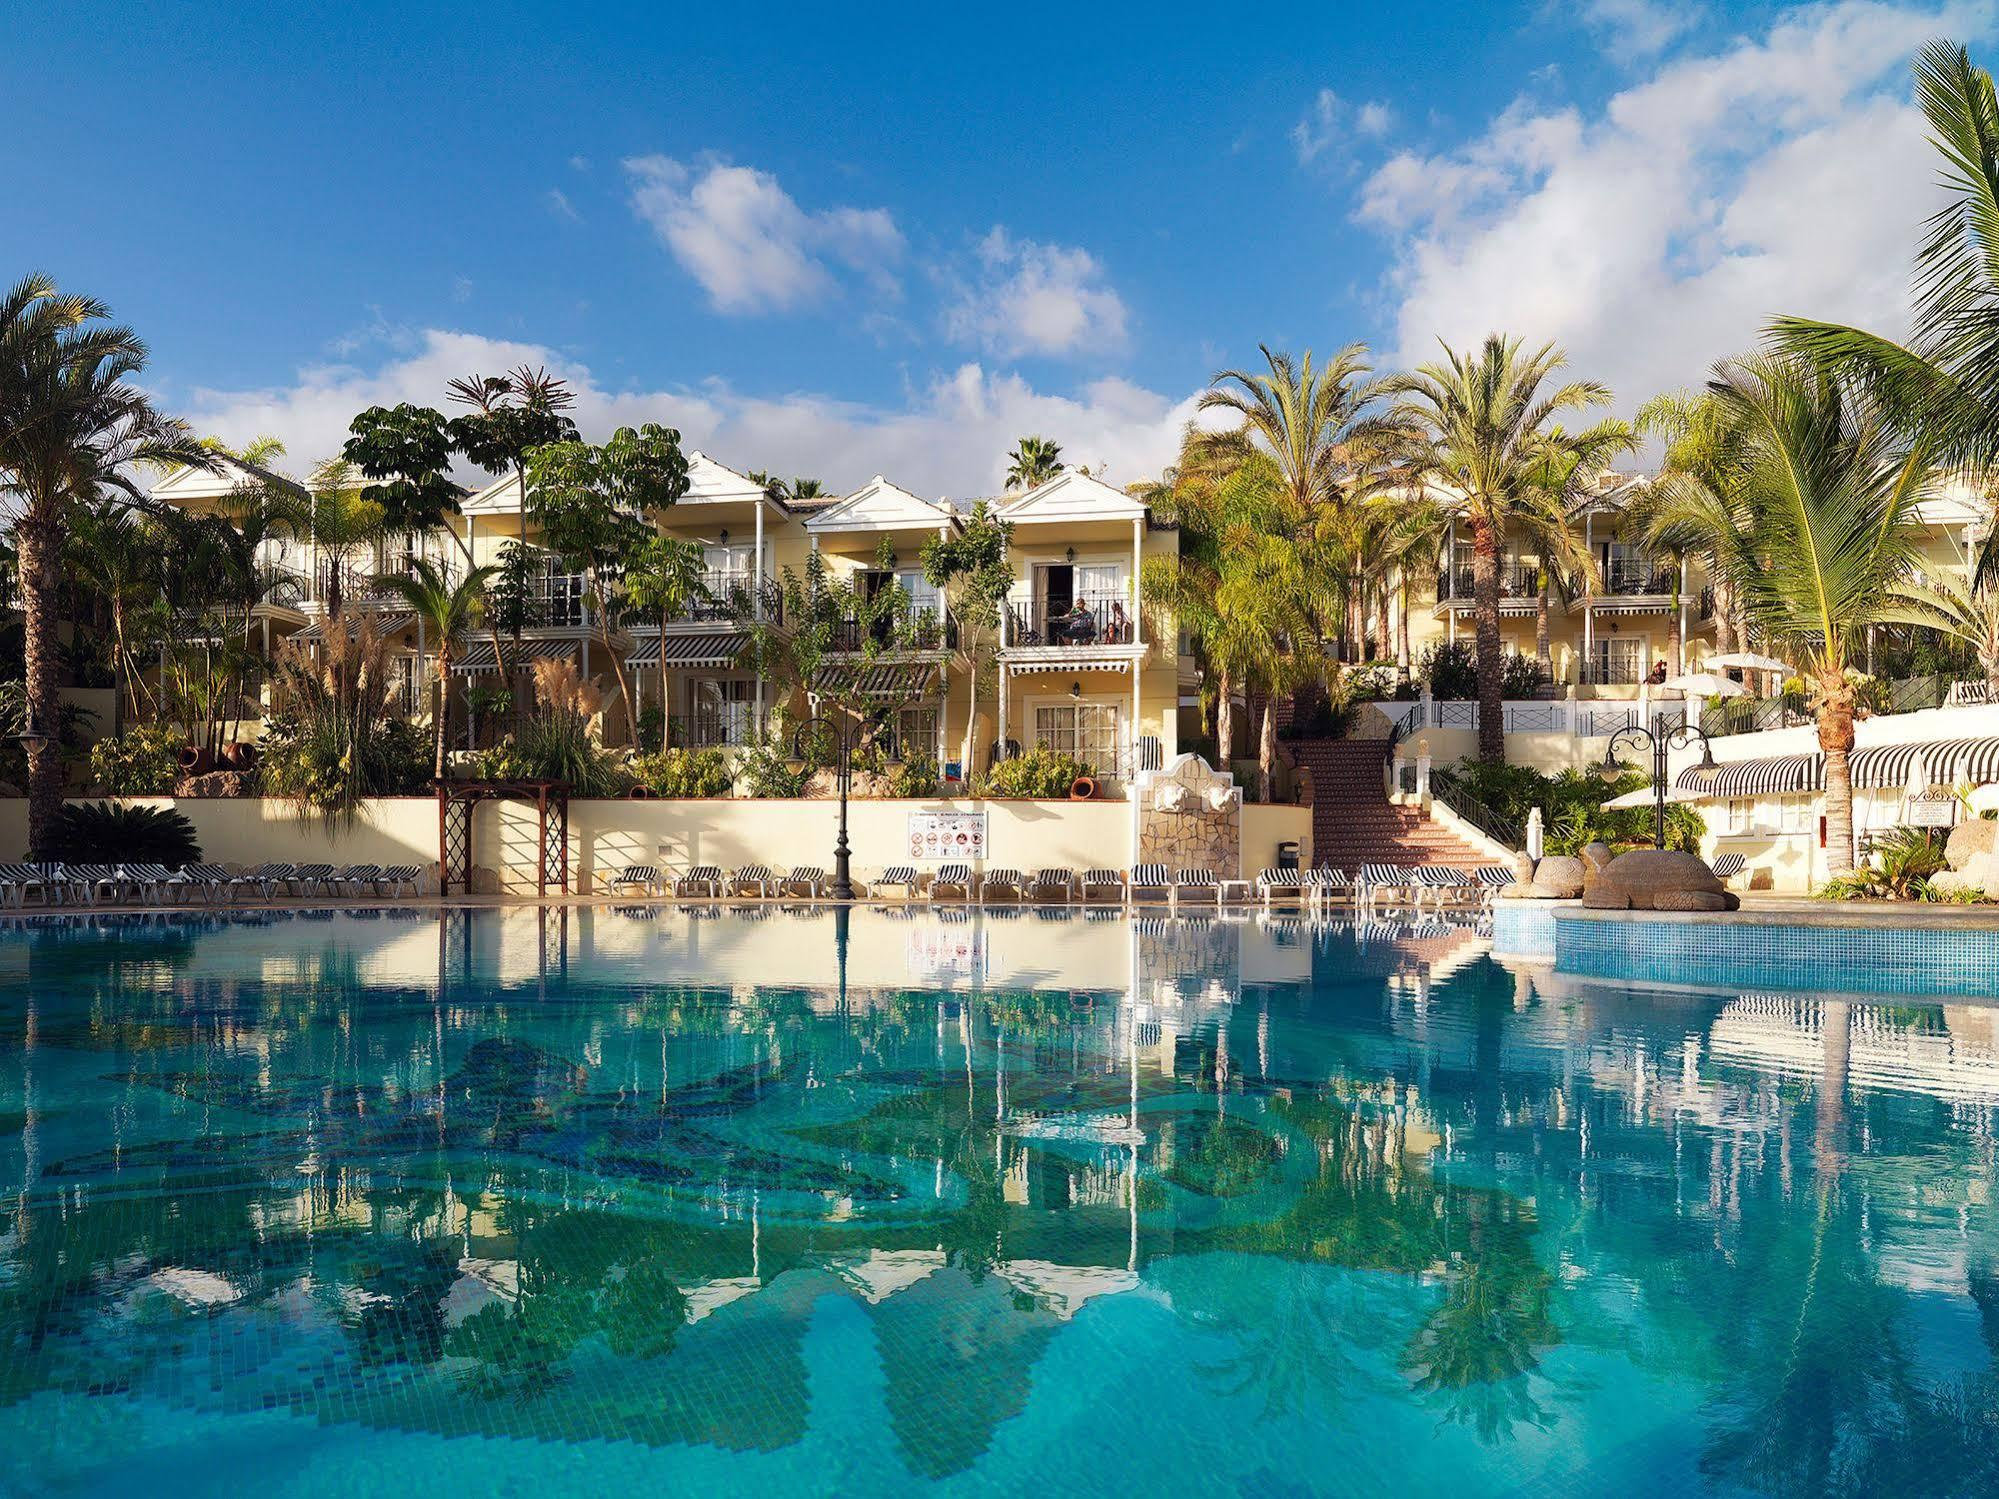 View Gran Oasis Resort's beautiful main pool in dramatic Tenerife.